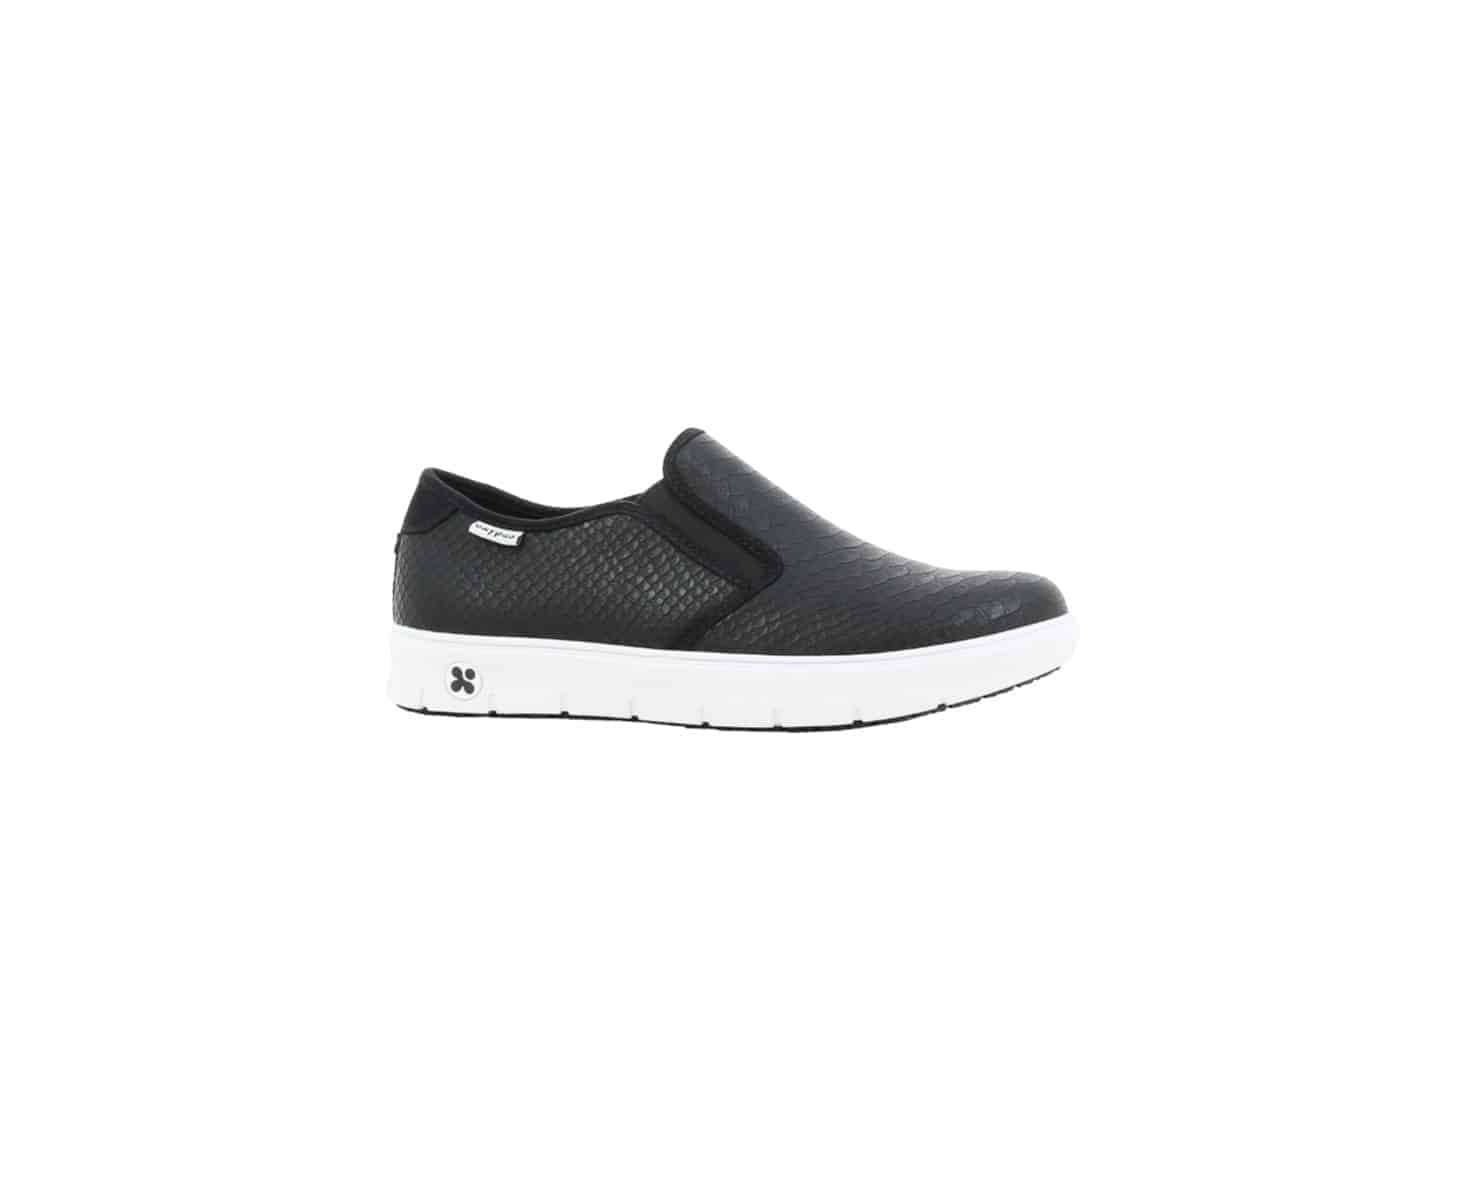 Oxypas 'Selina', Professional Anti-slip, Anti-static Slip-on Shoe